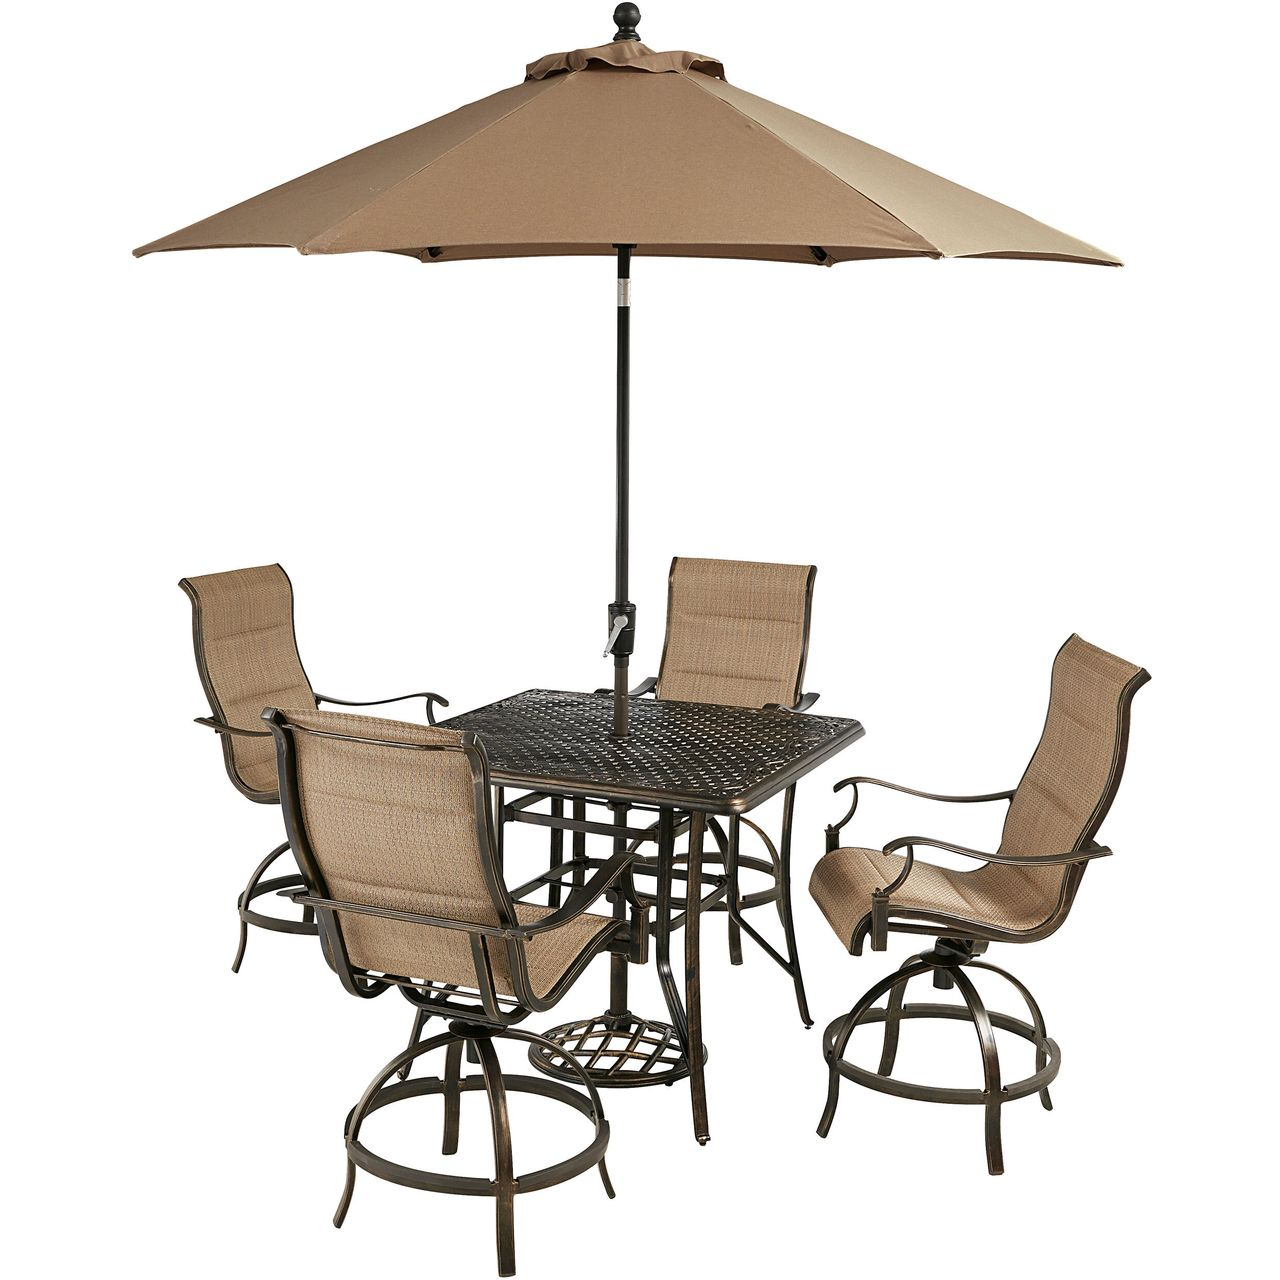 """Hanover Traditions 5-Pc 42"""" High-Dining Set With Tan Chairs/Umbrella"""